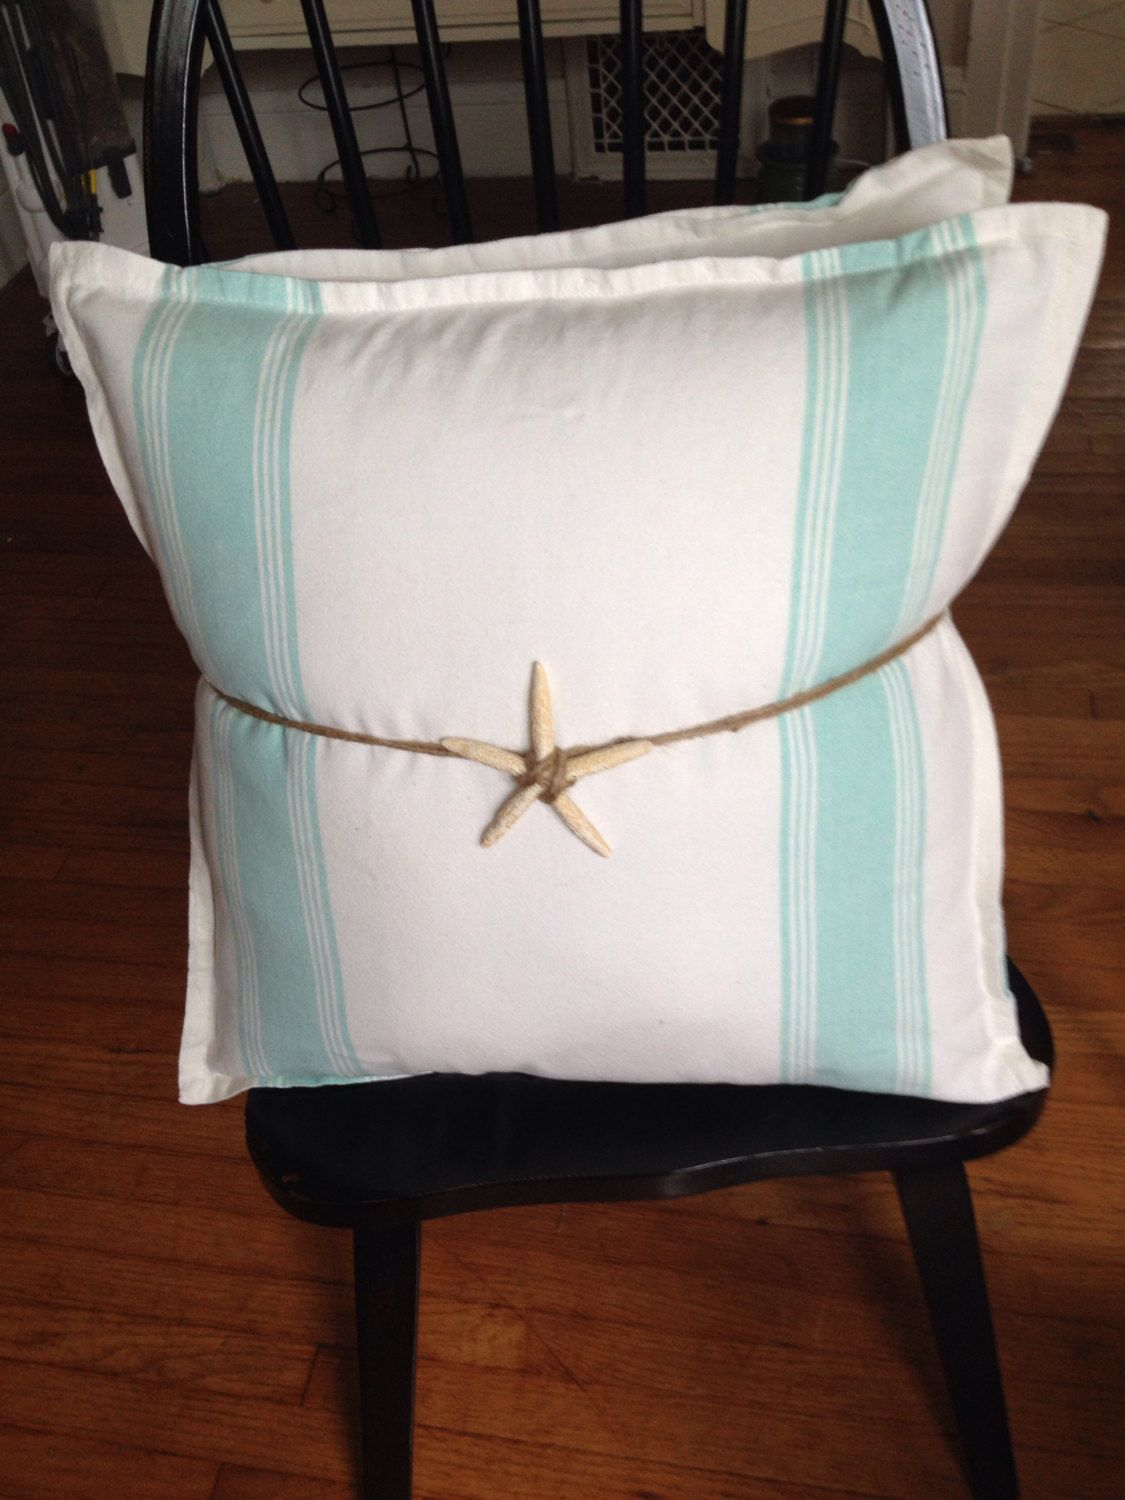 Set of two seafoam green striped 20 x 20 coastal pillows by MadisonsCottage on Etsy